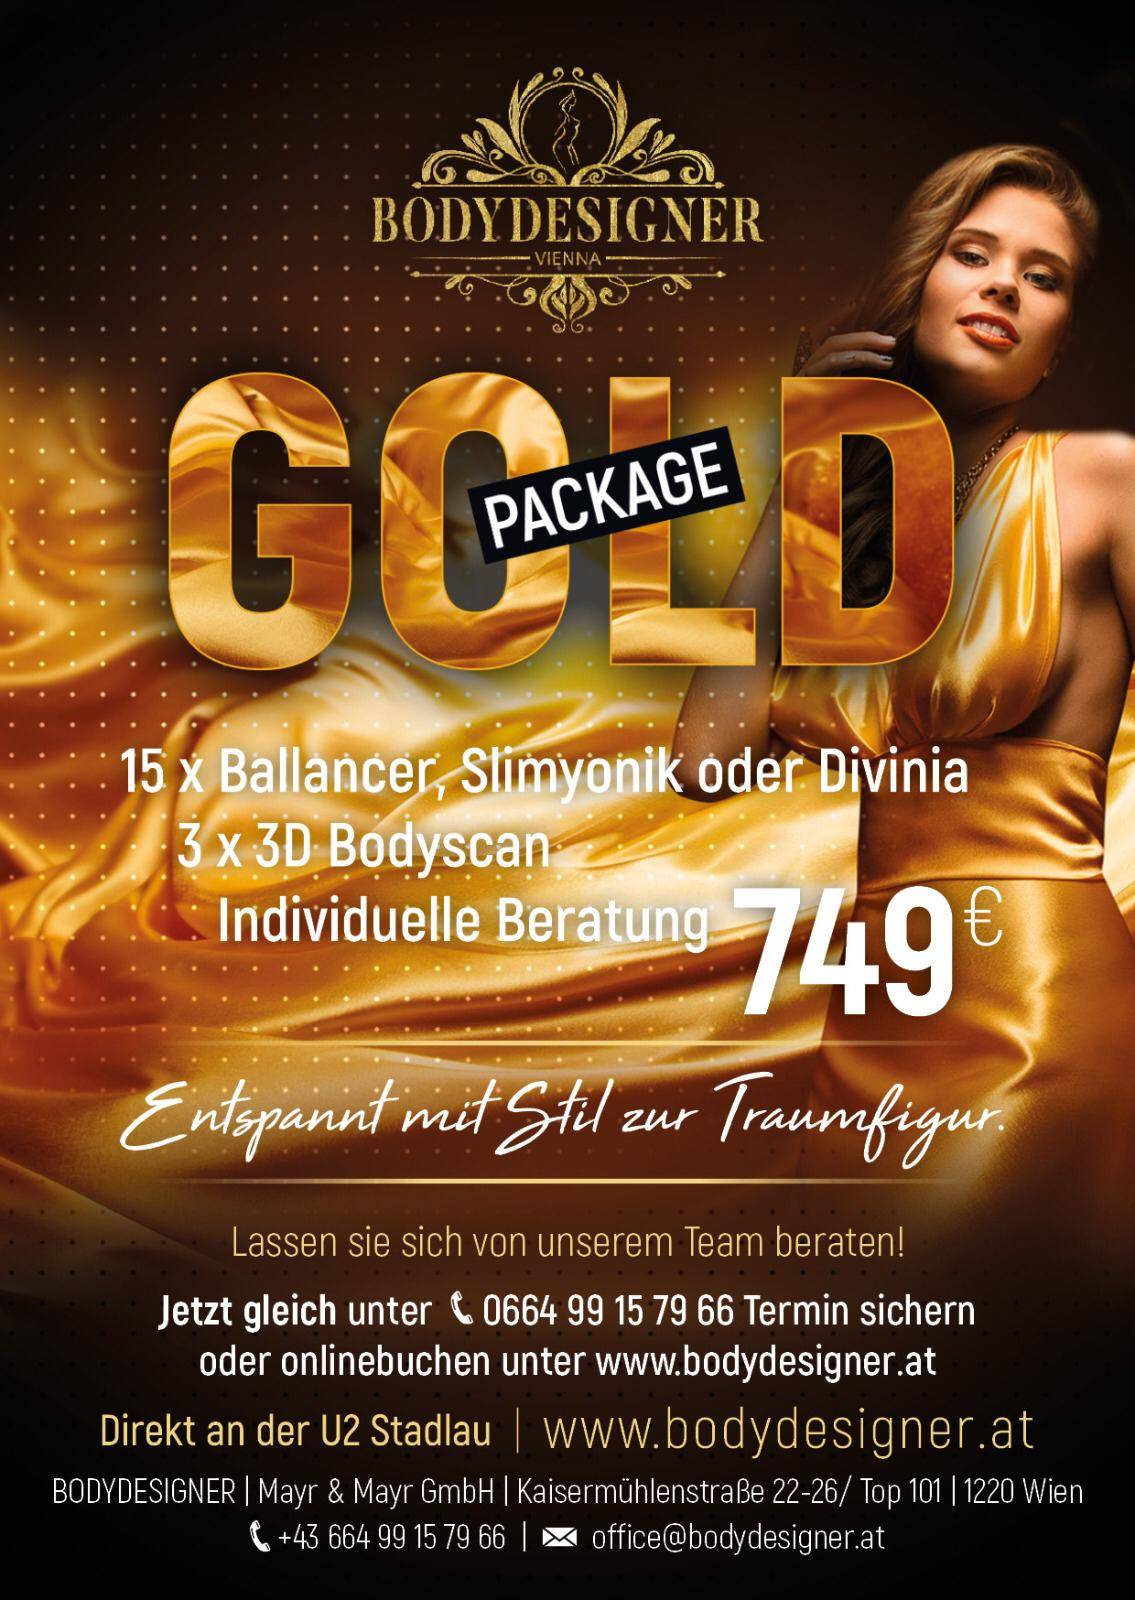 Bodydesigner Gold Package